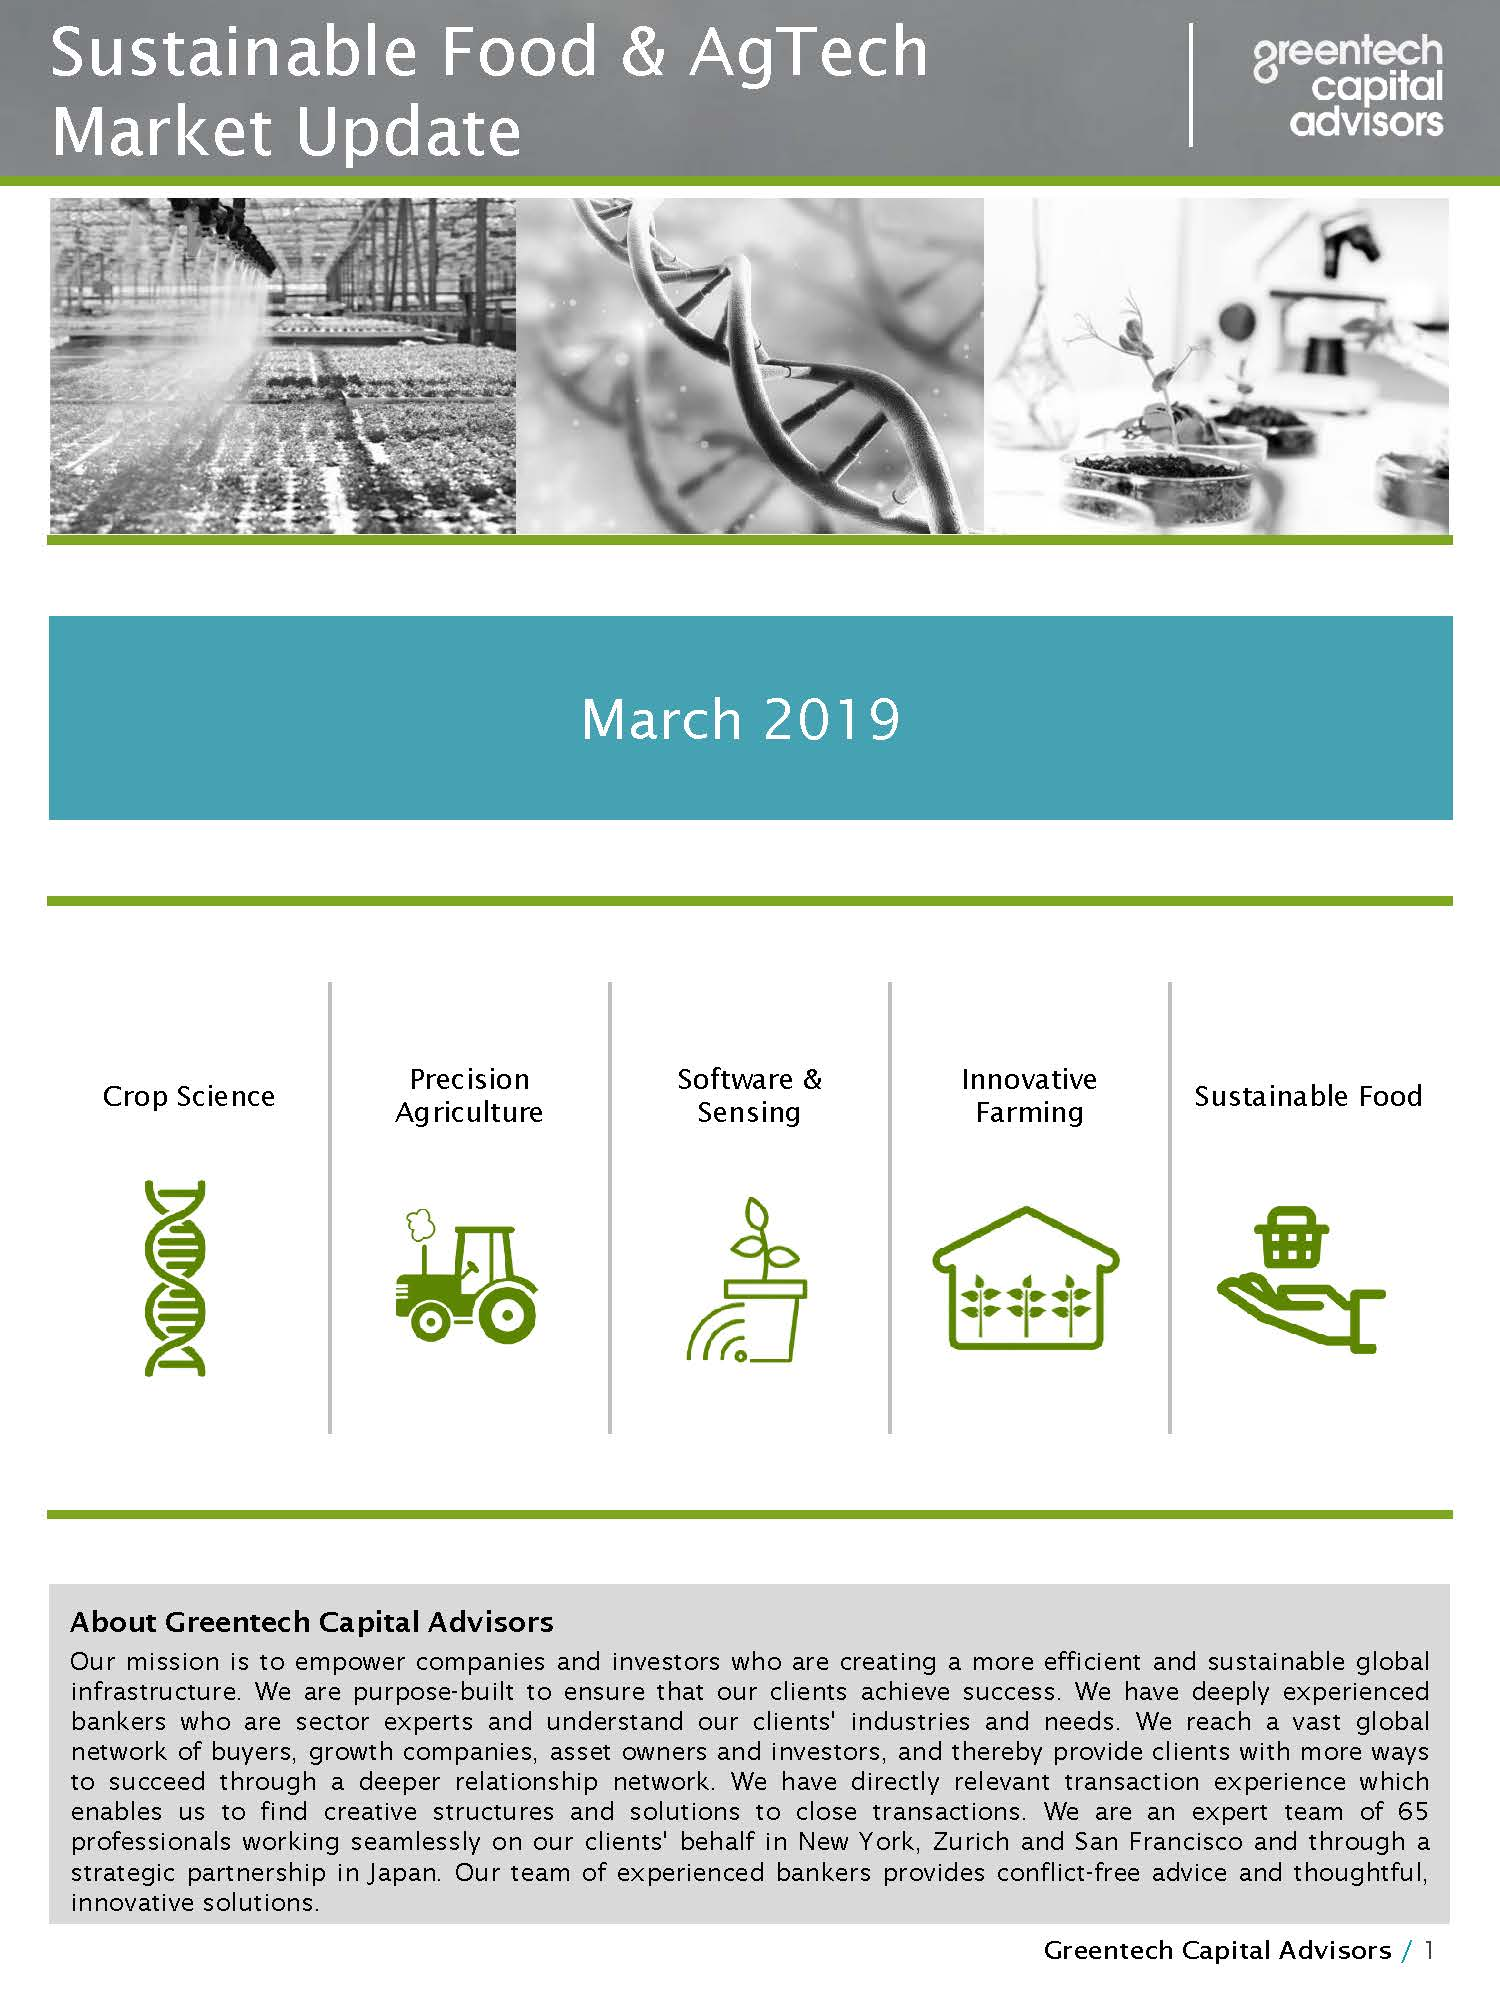 Sustainable Food & AgTech Market Update Newsletter - March 2019